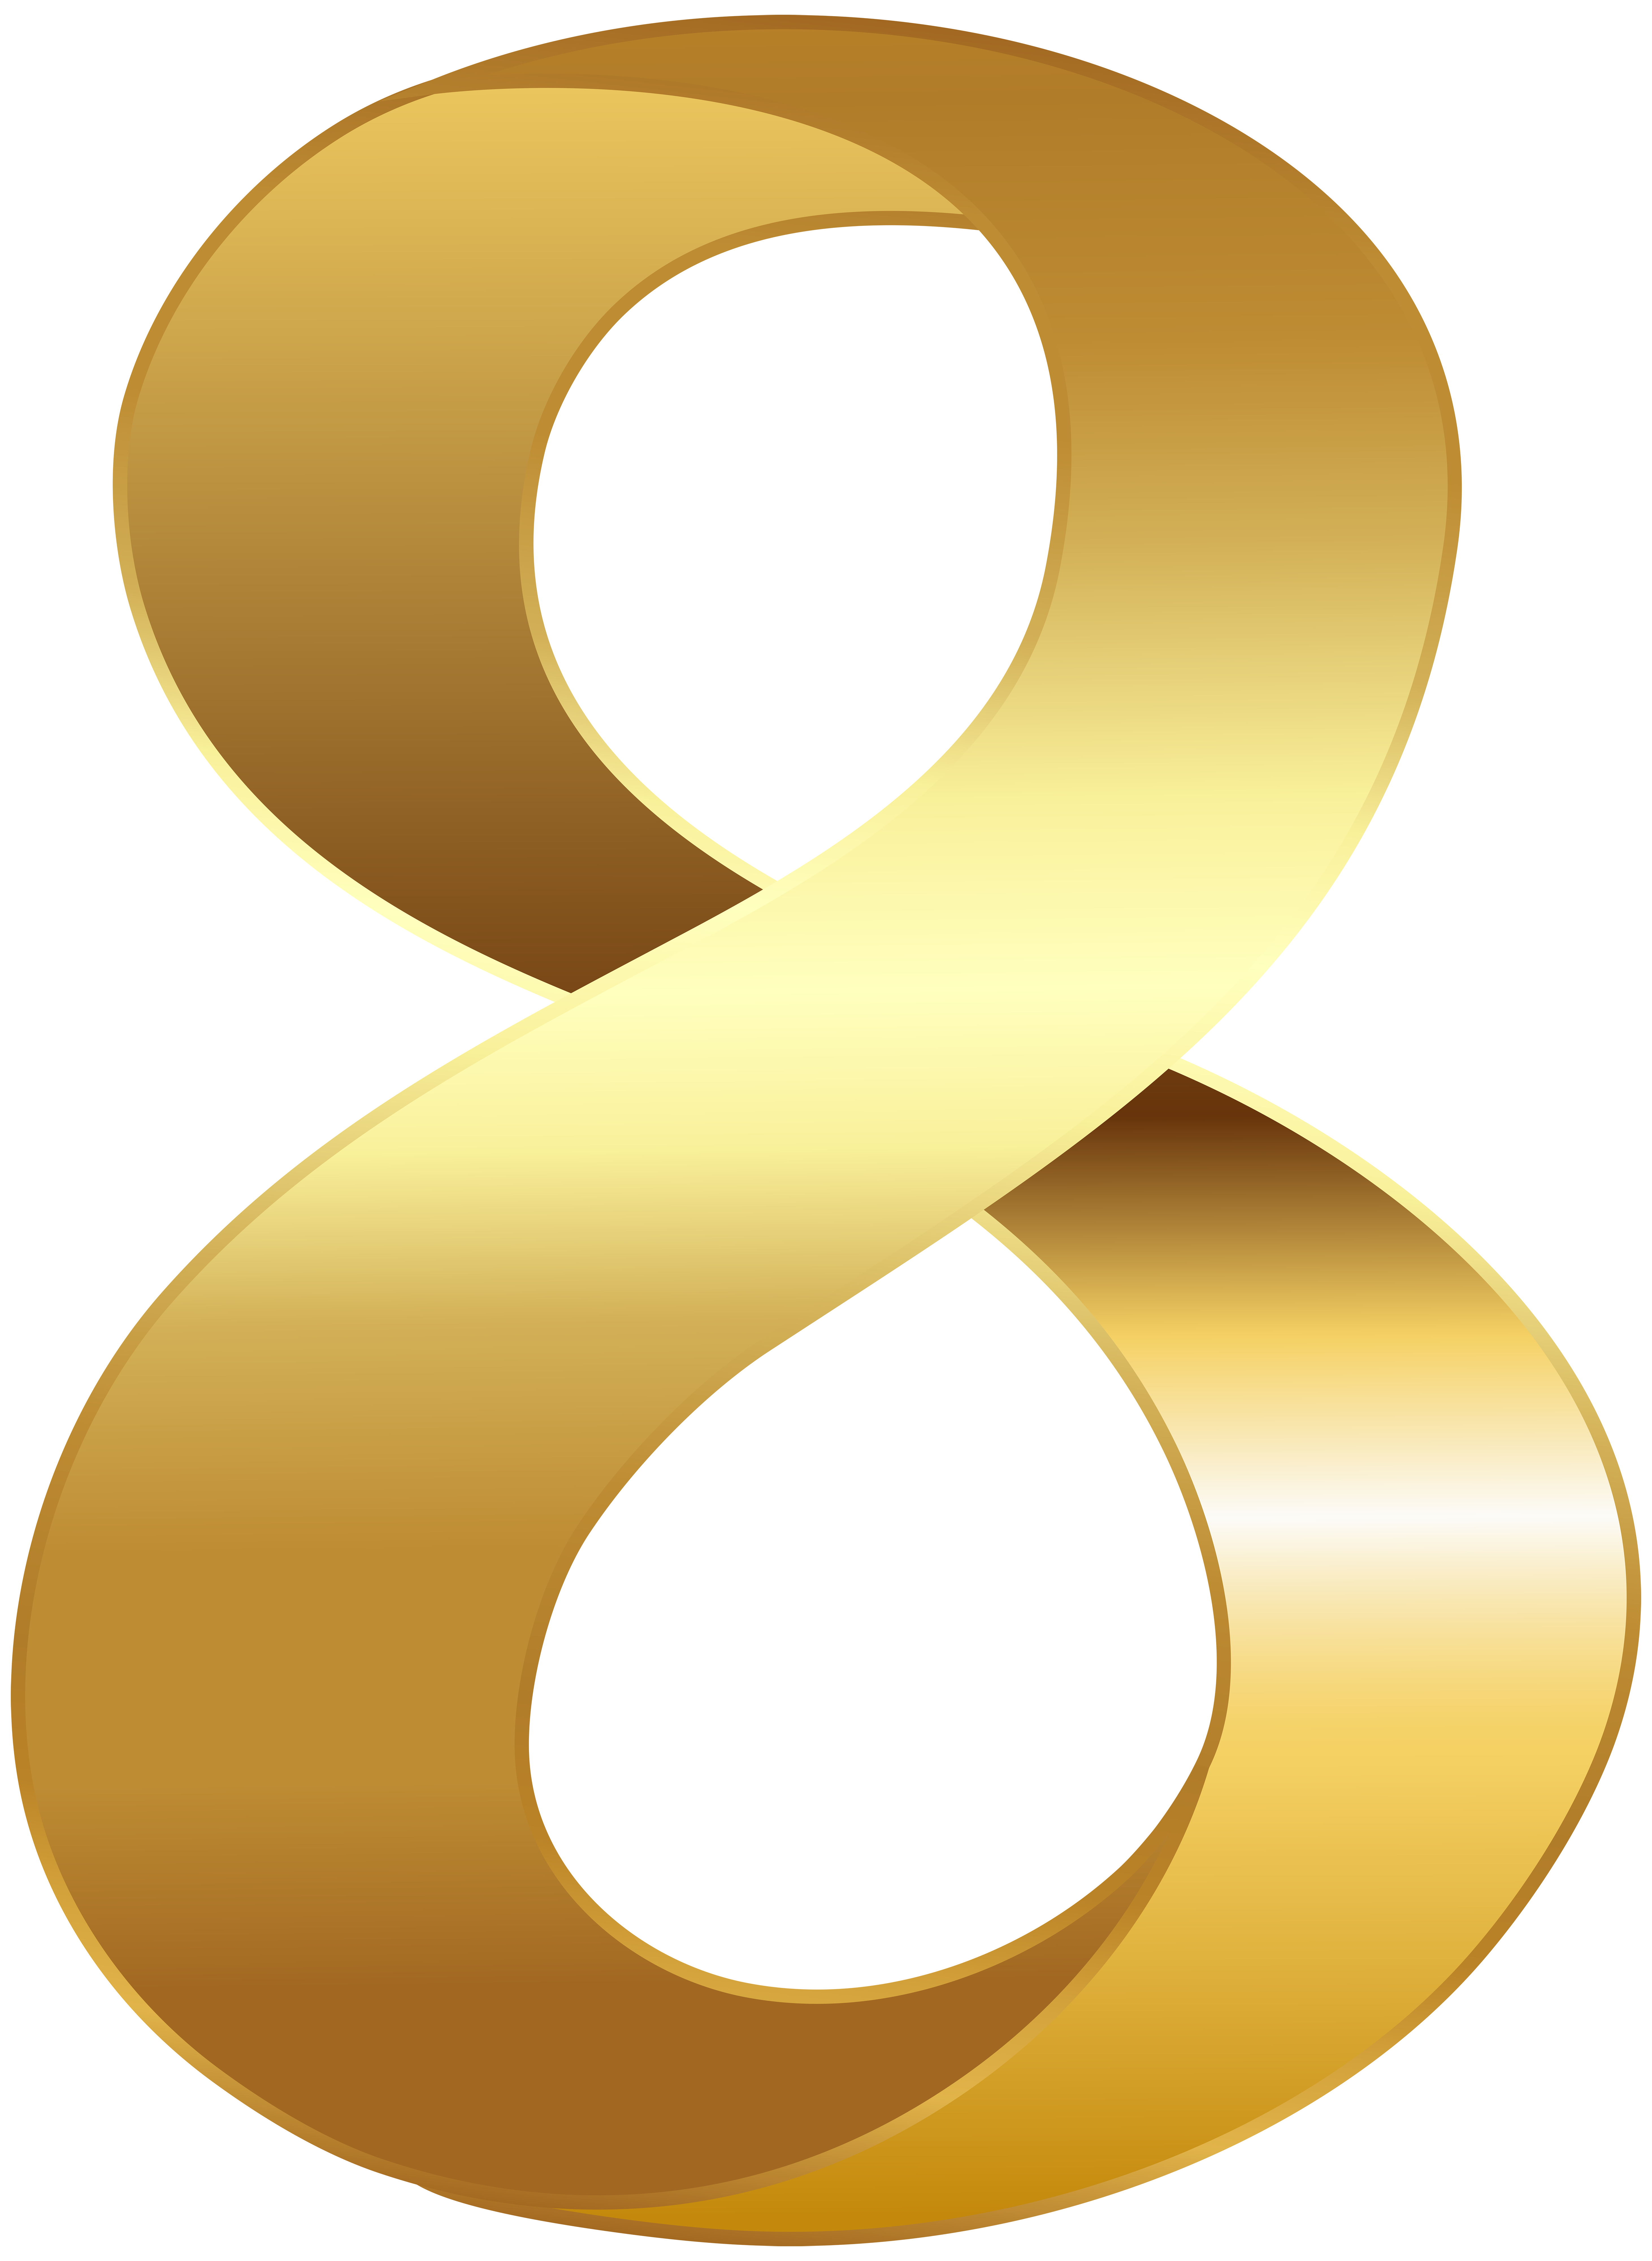 Golden number transparent png. Icecream clipart eight